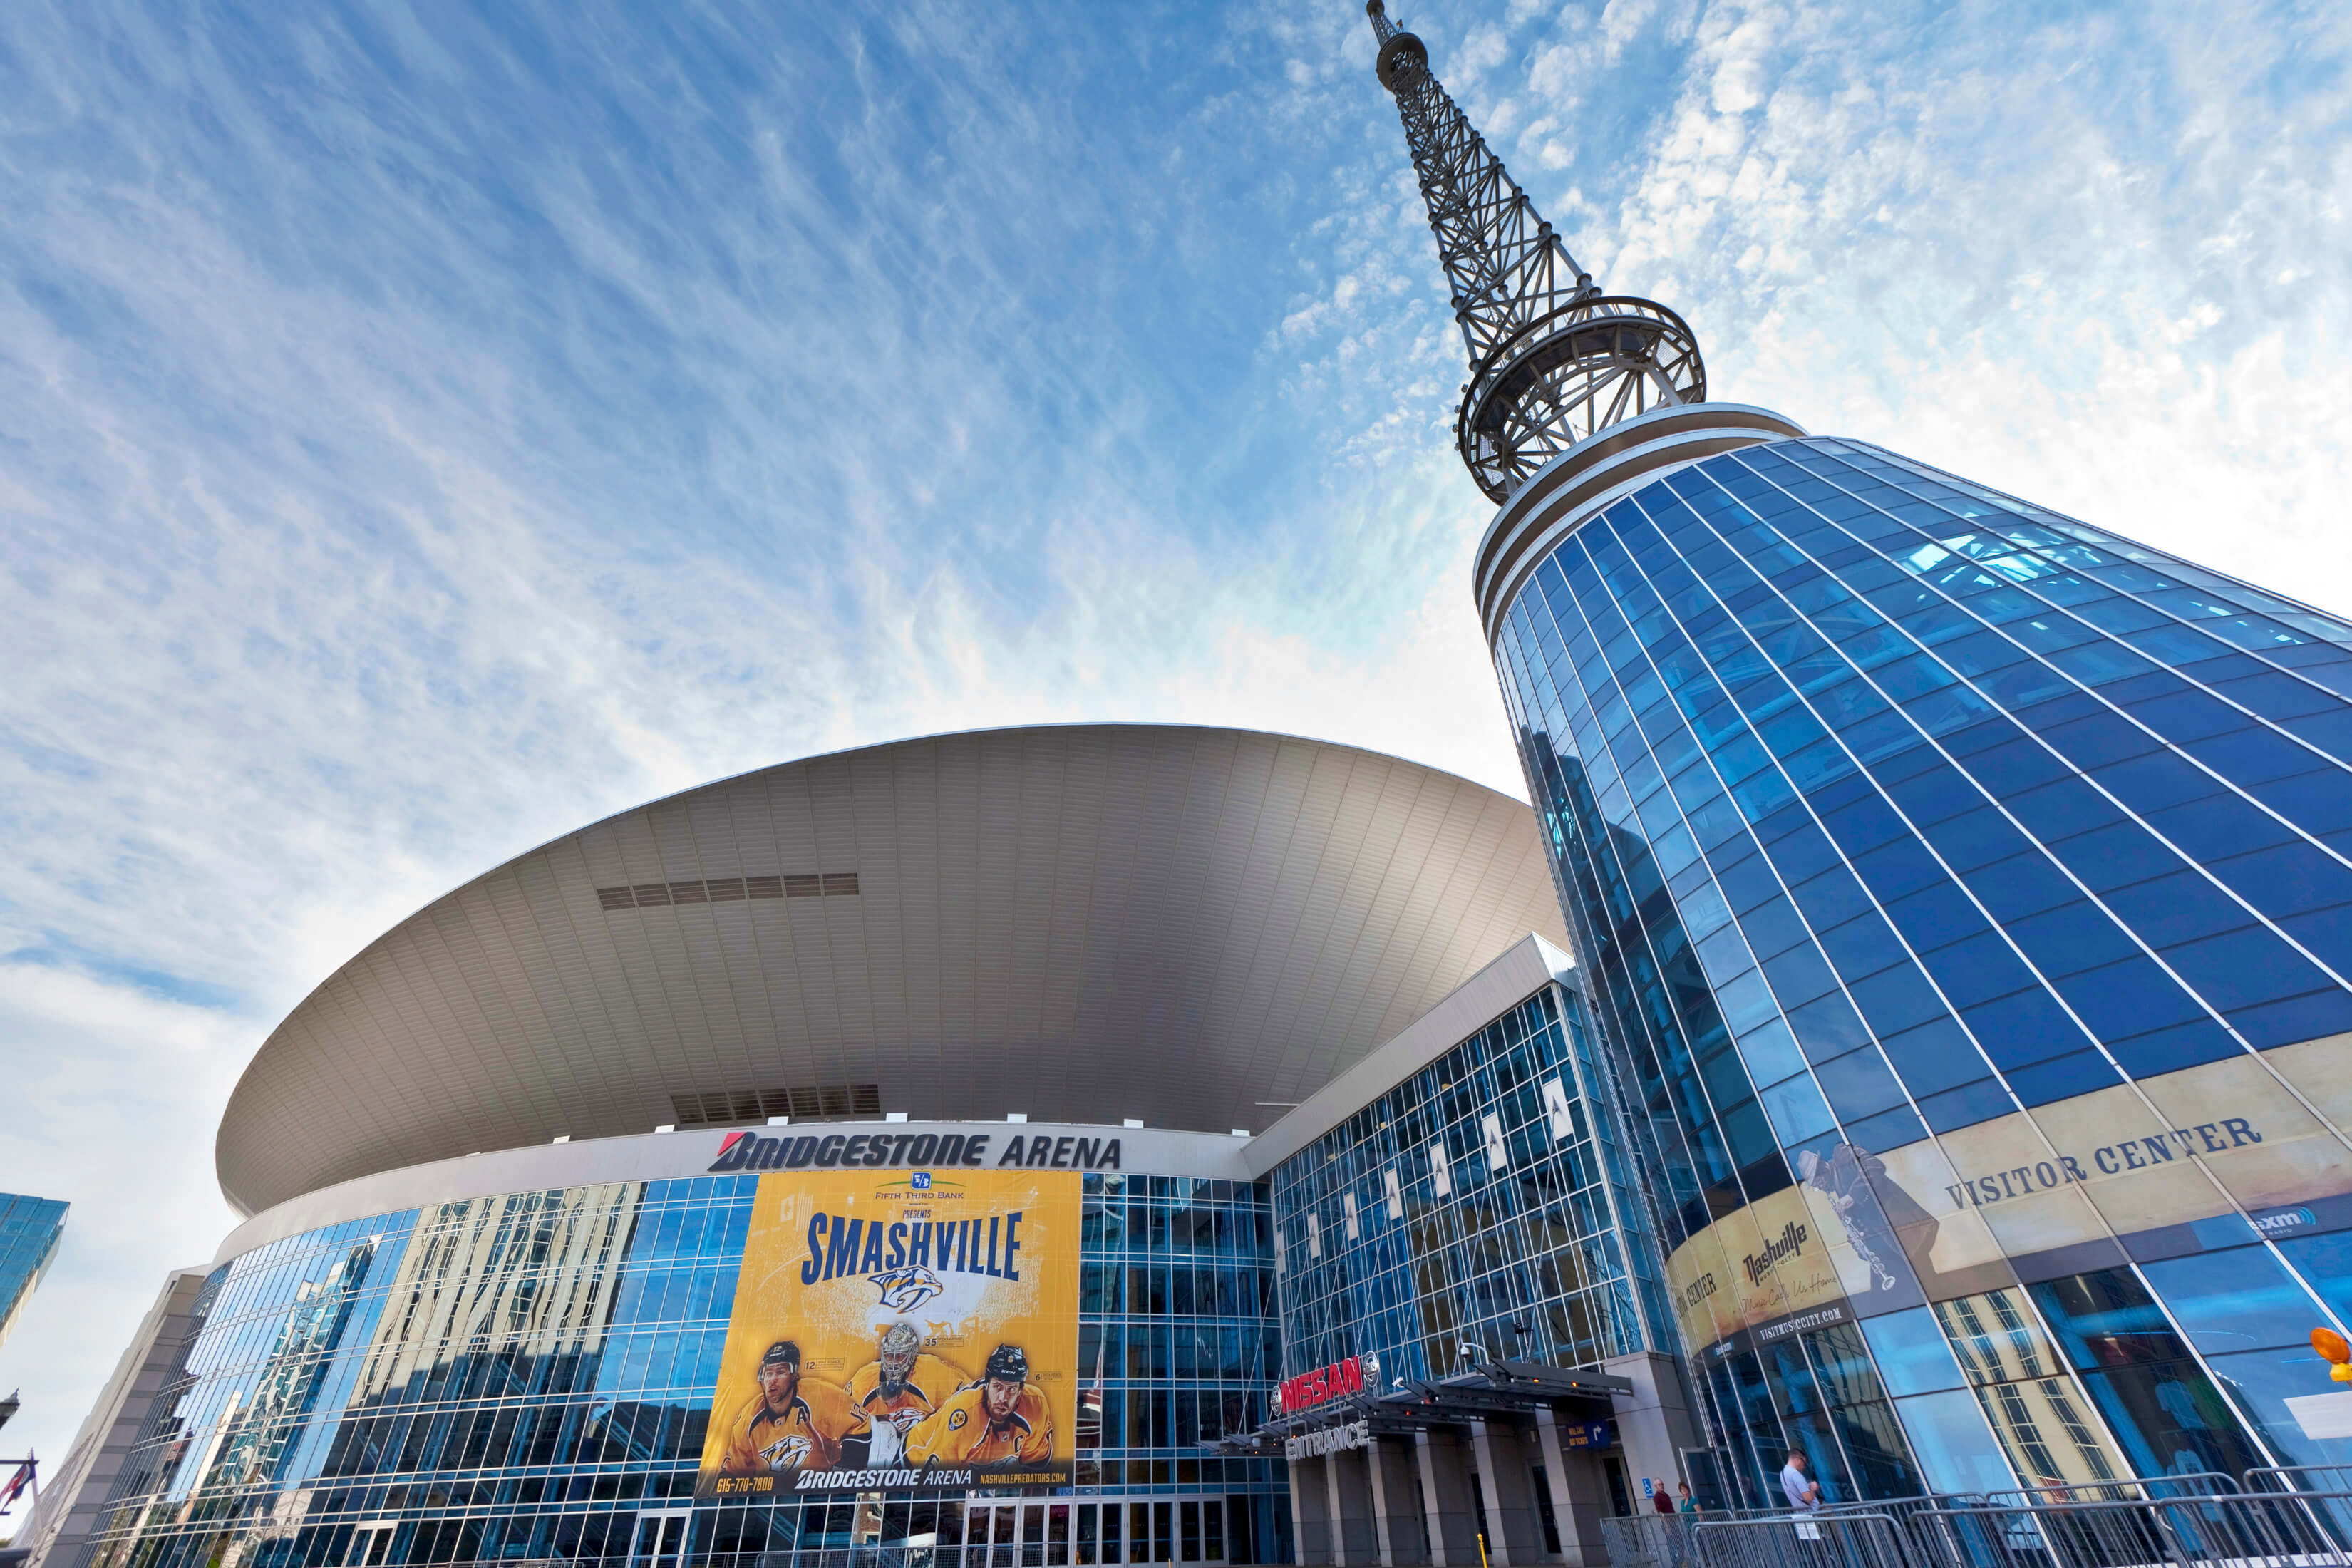 Bridgestone Arena things to do in nashville